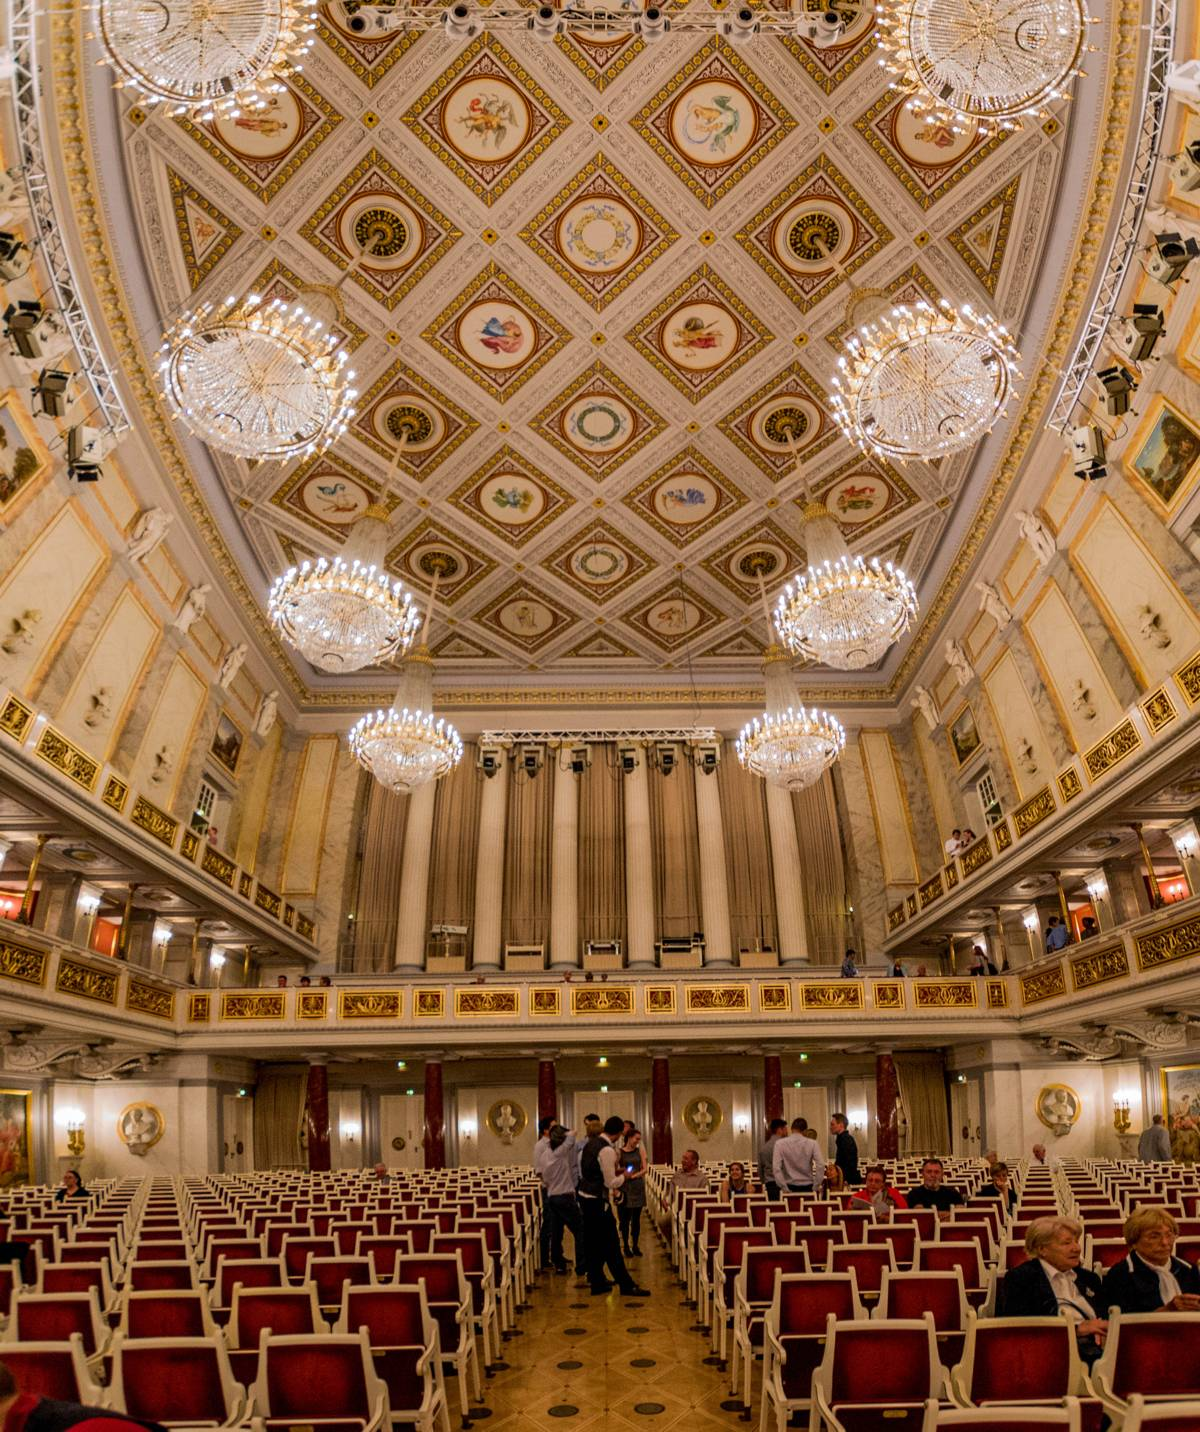 Cole Jarman Konzerthaus Berlin Interior 2